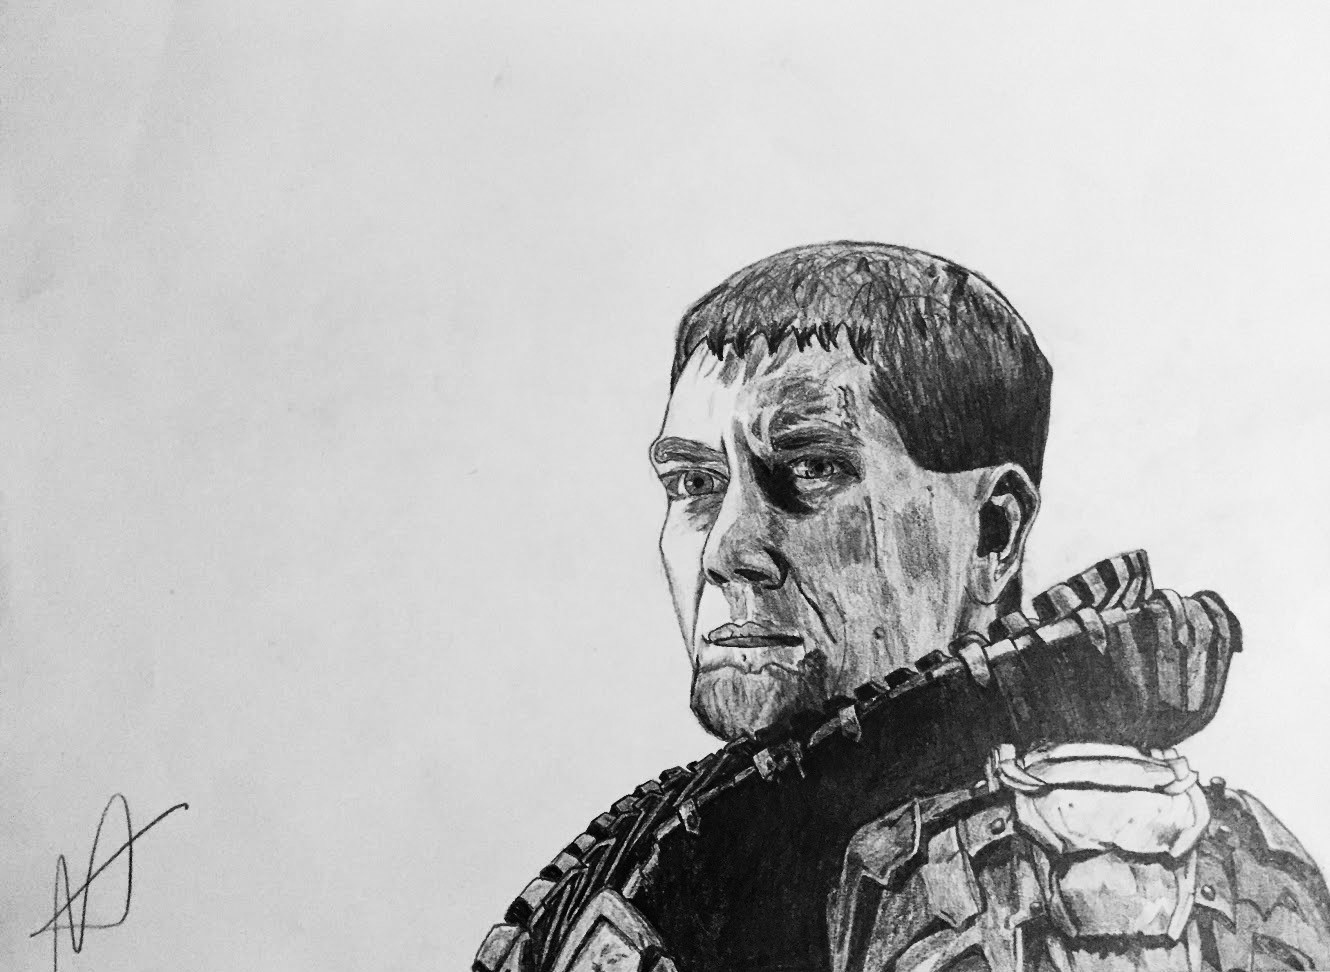 General Zod drawing